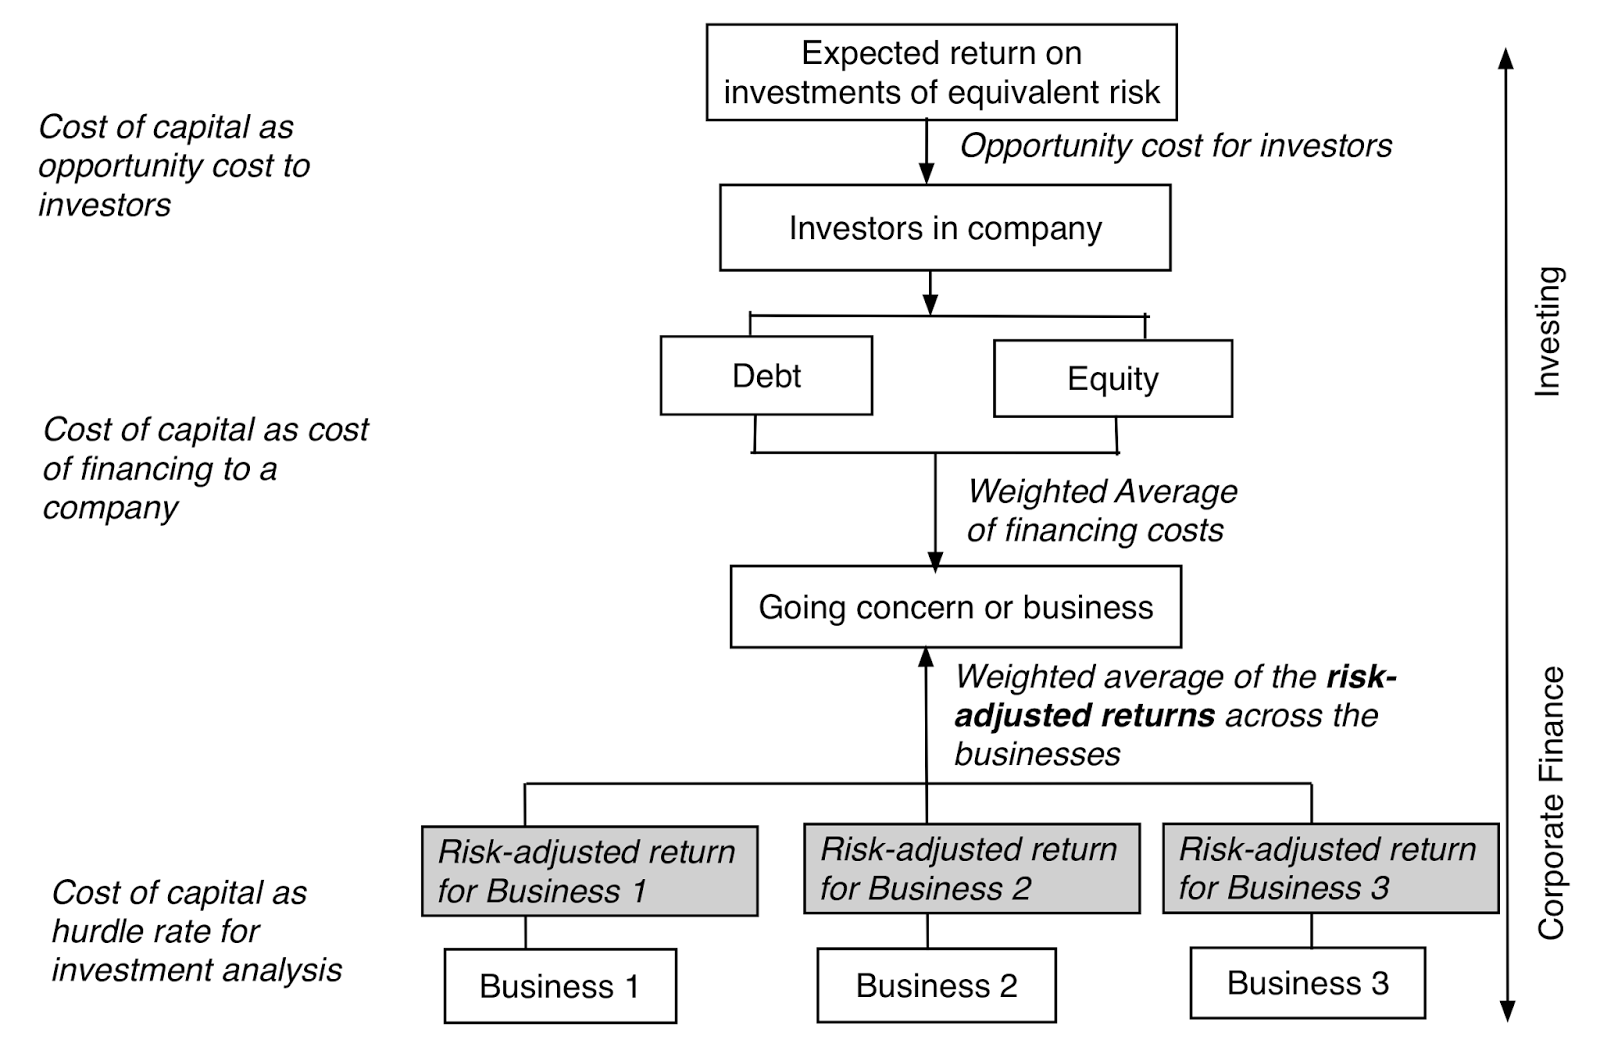 investment and equity cost Equity investments main article: stock trader an equity investment generally refers to the buying and holding of shares of stock on a stock market by individuals and firms in anticipation of income from dividends and capital gains.